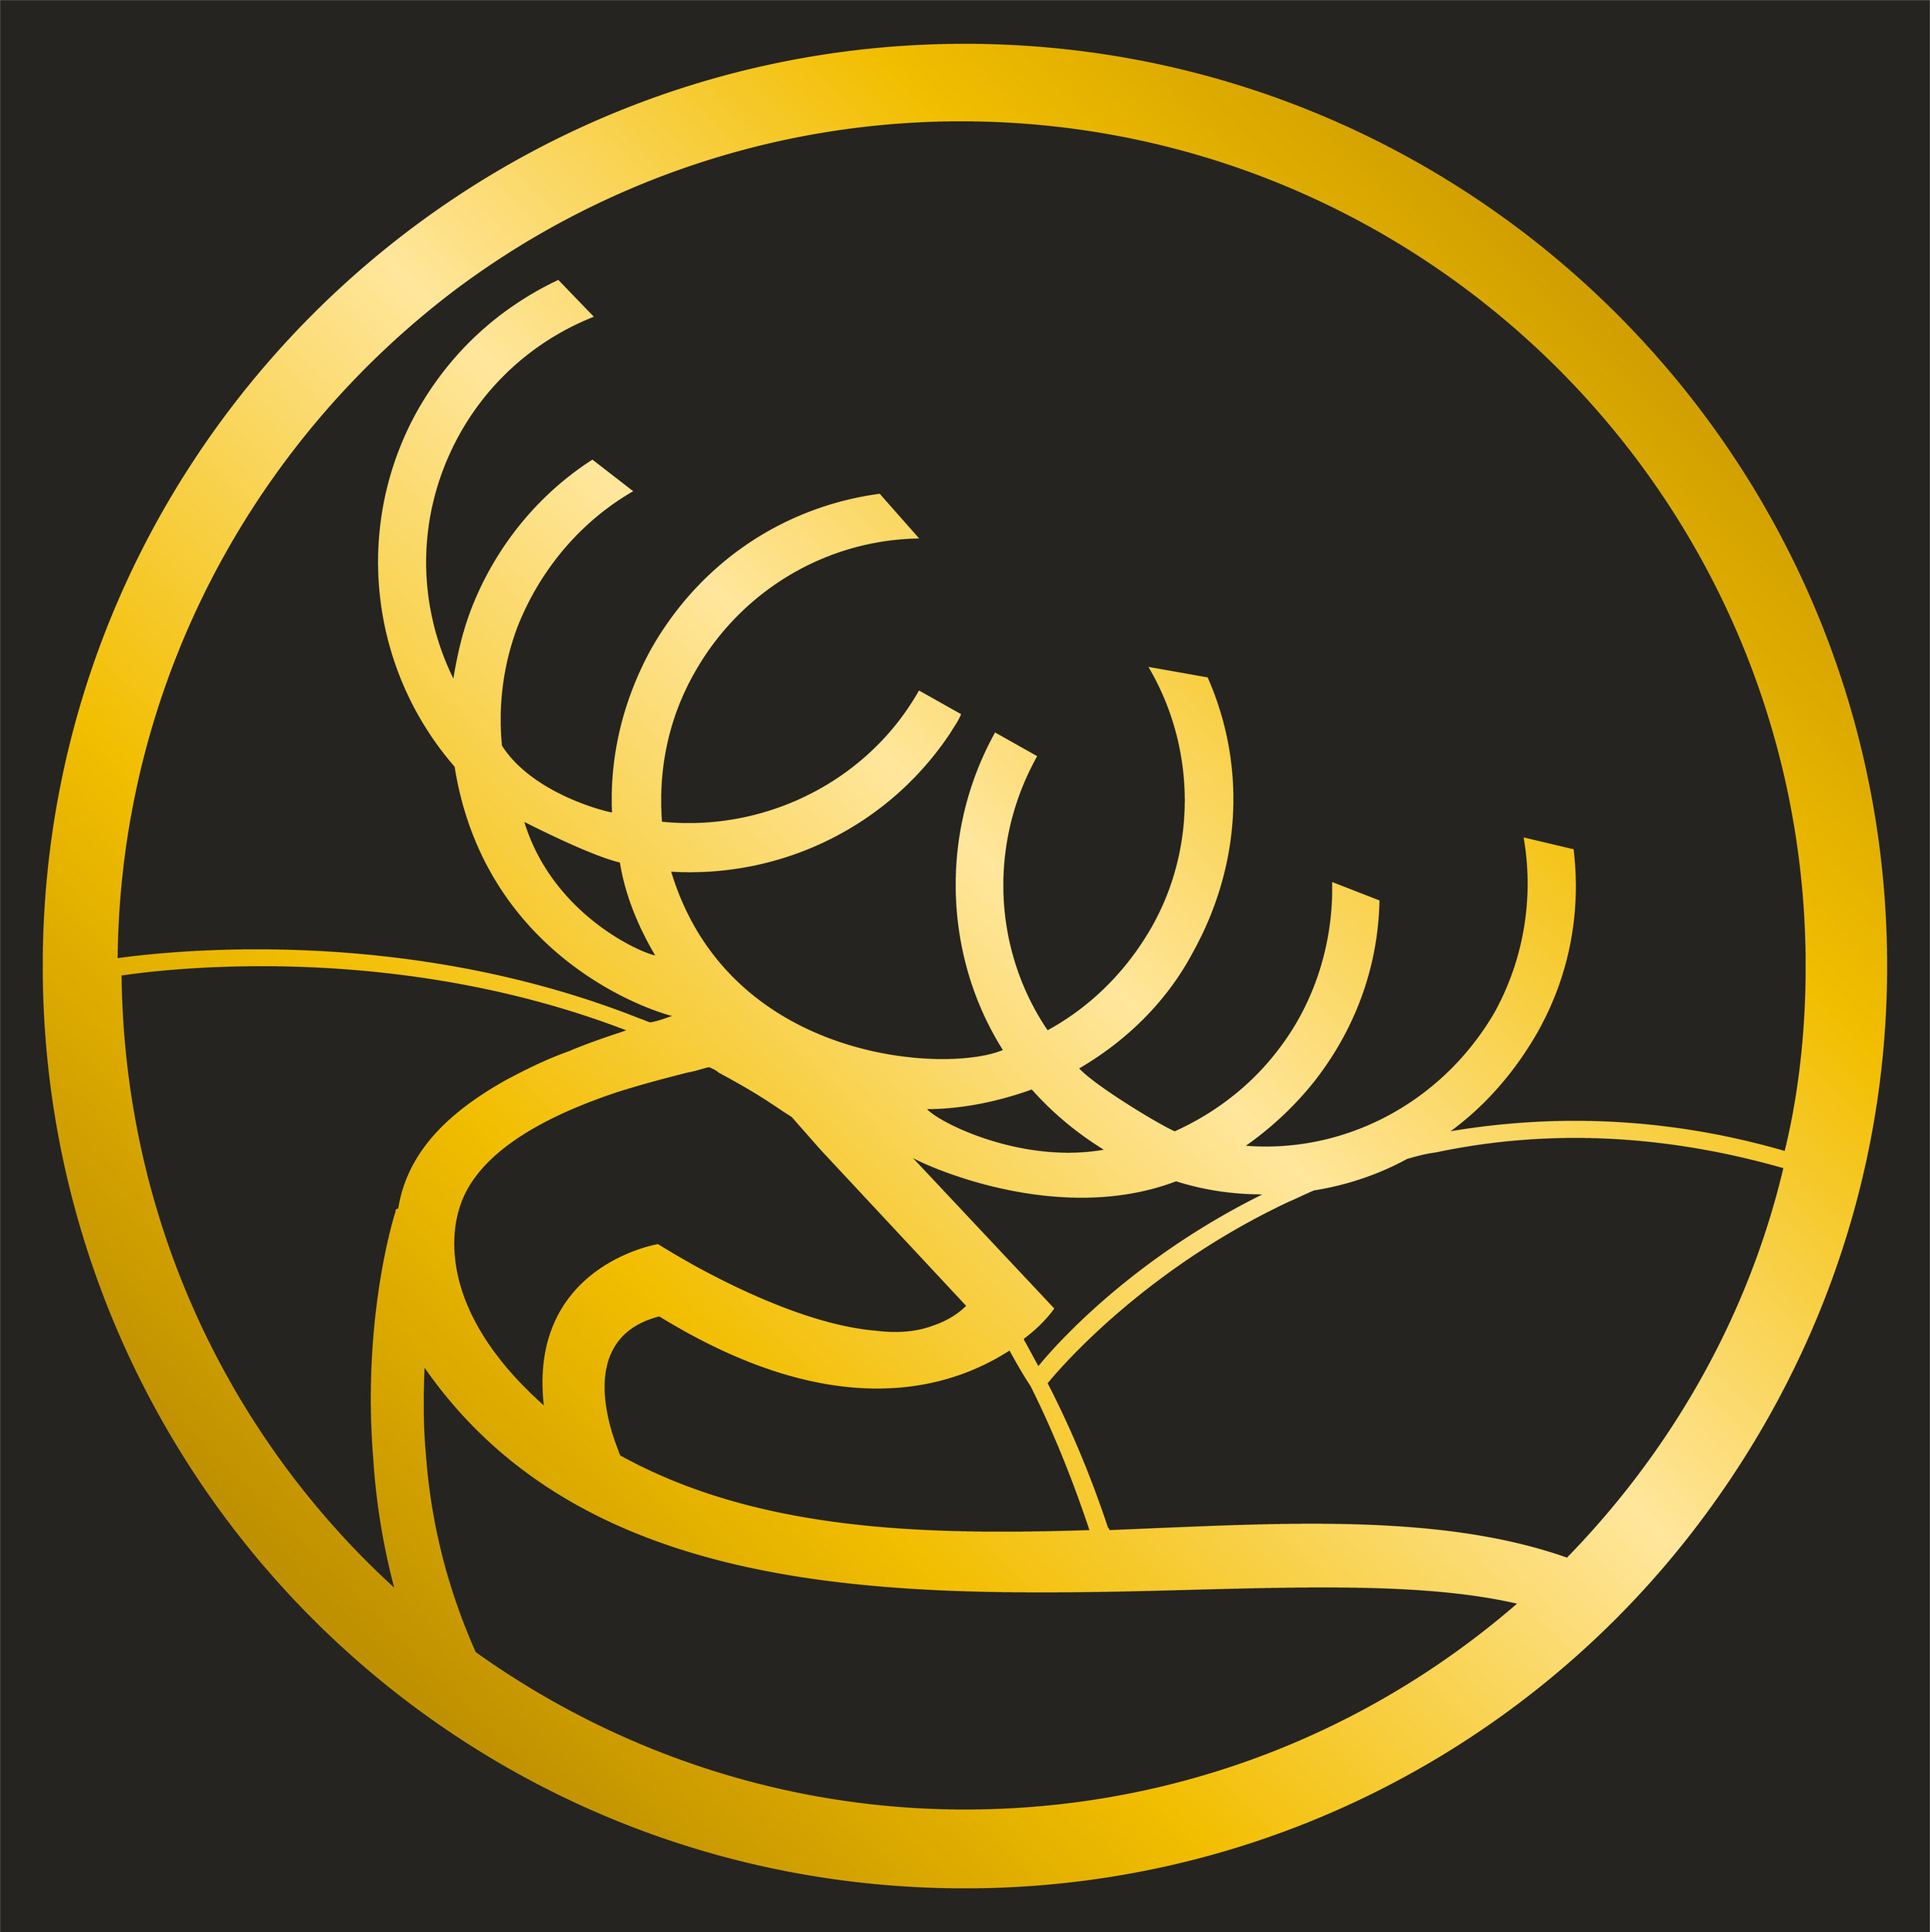 The Reindeer in our logo - Inspired from the Sami coulture and Tromsø City Weapon